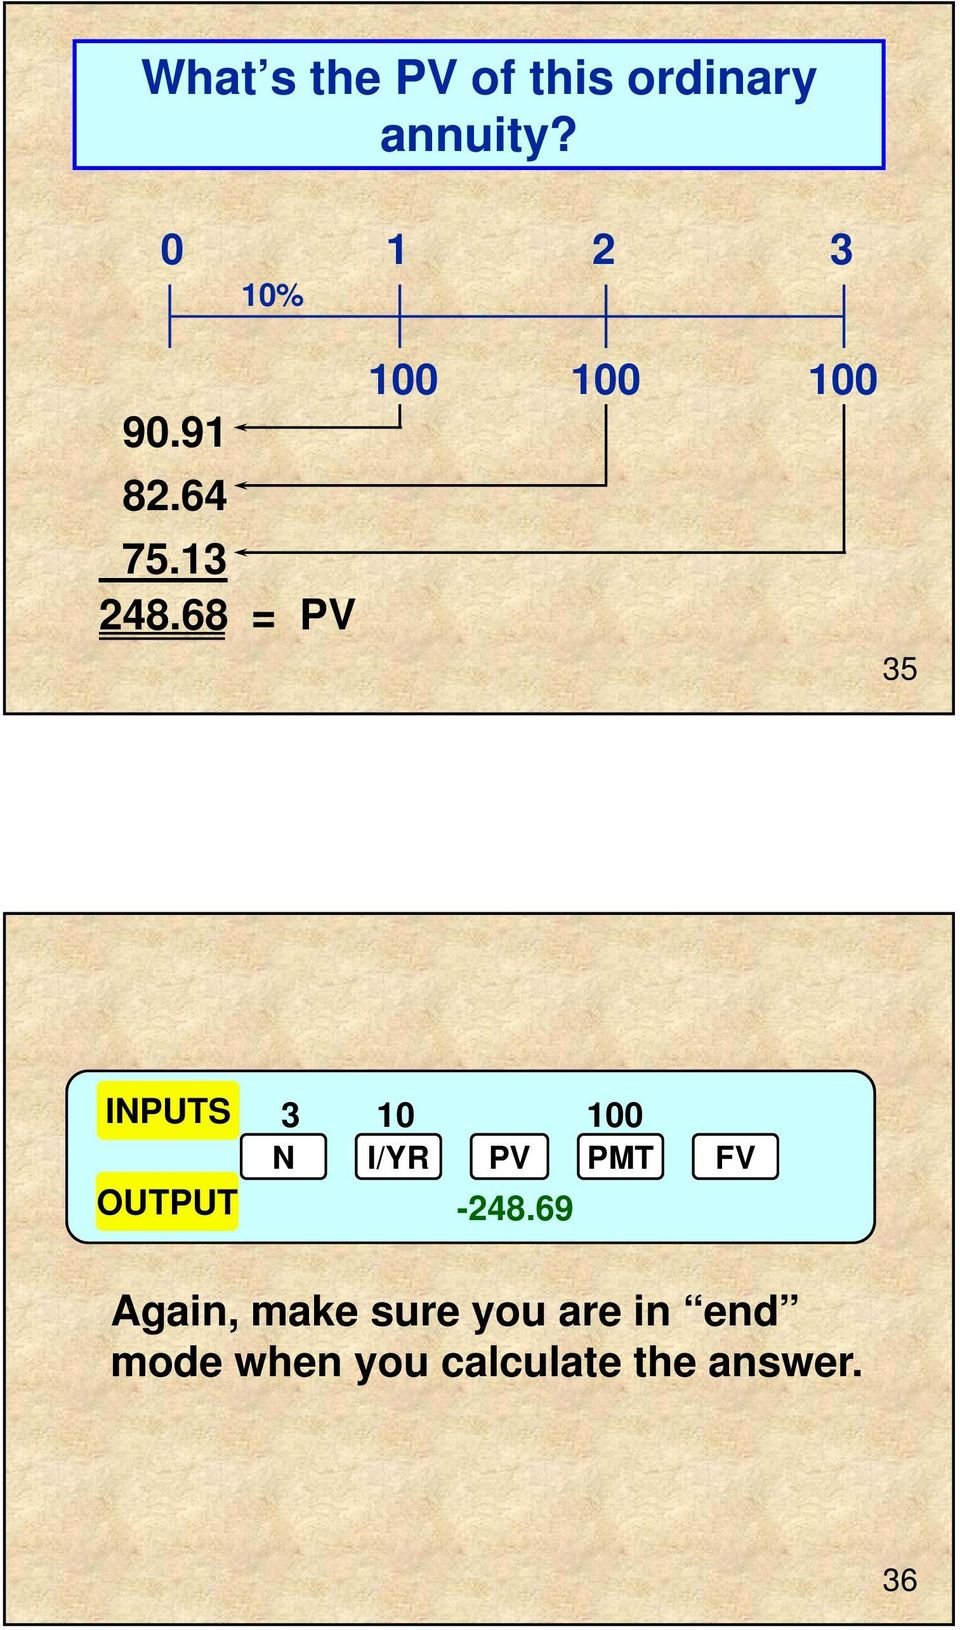 68 = PV 100 100 100 35 INPUTS OUTPUT 3 10 100-248.